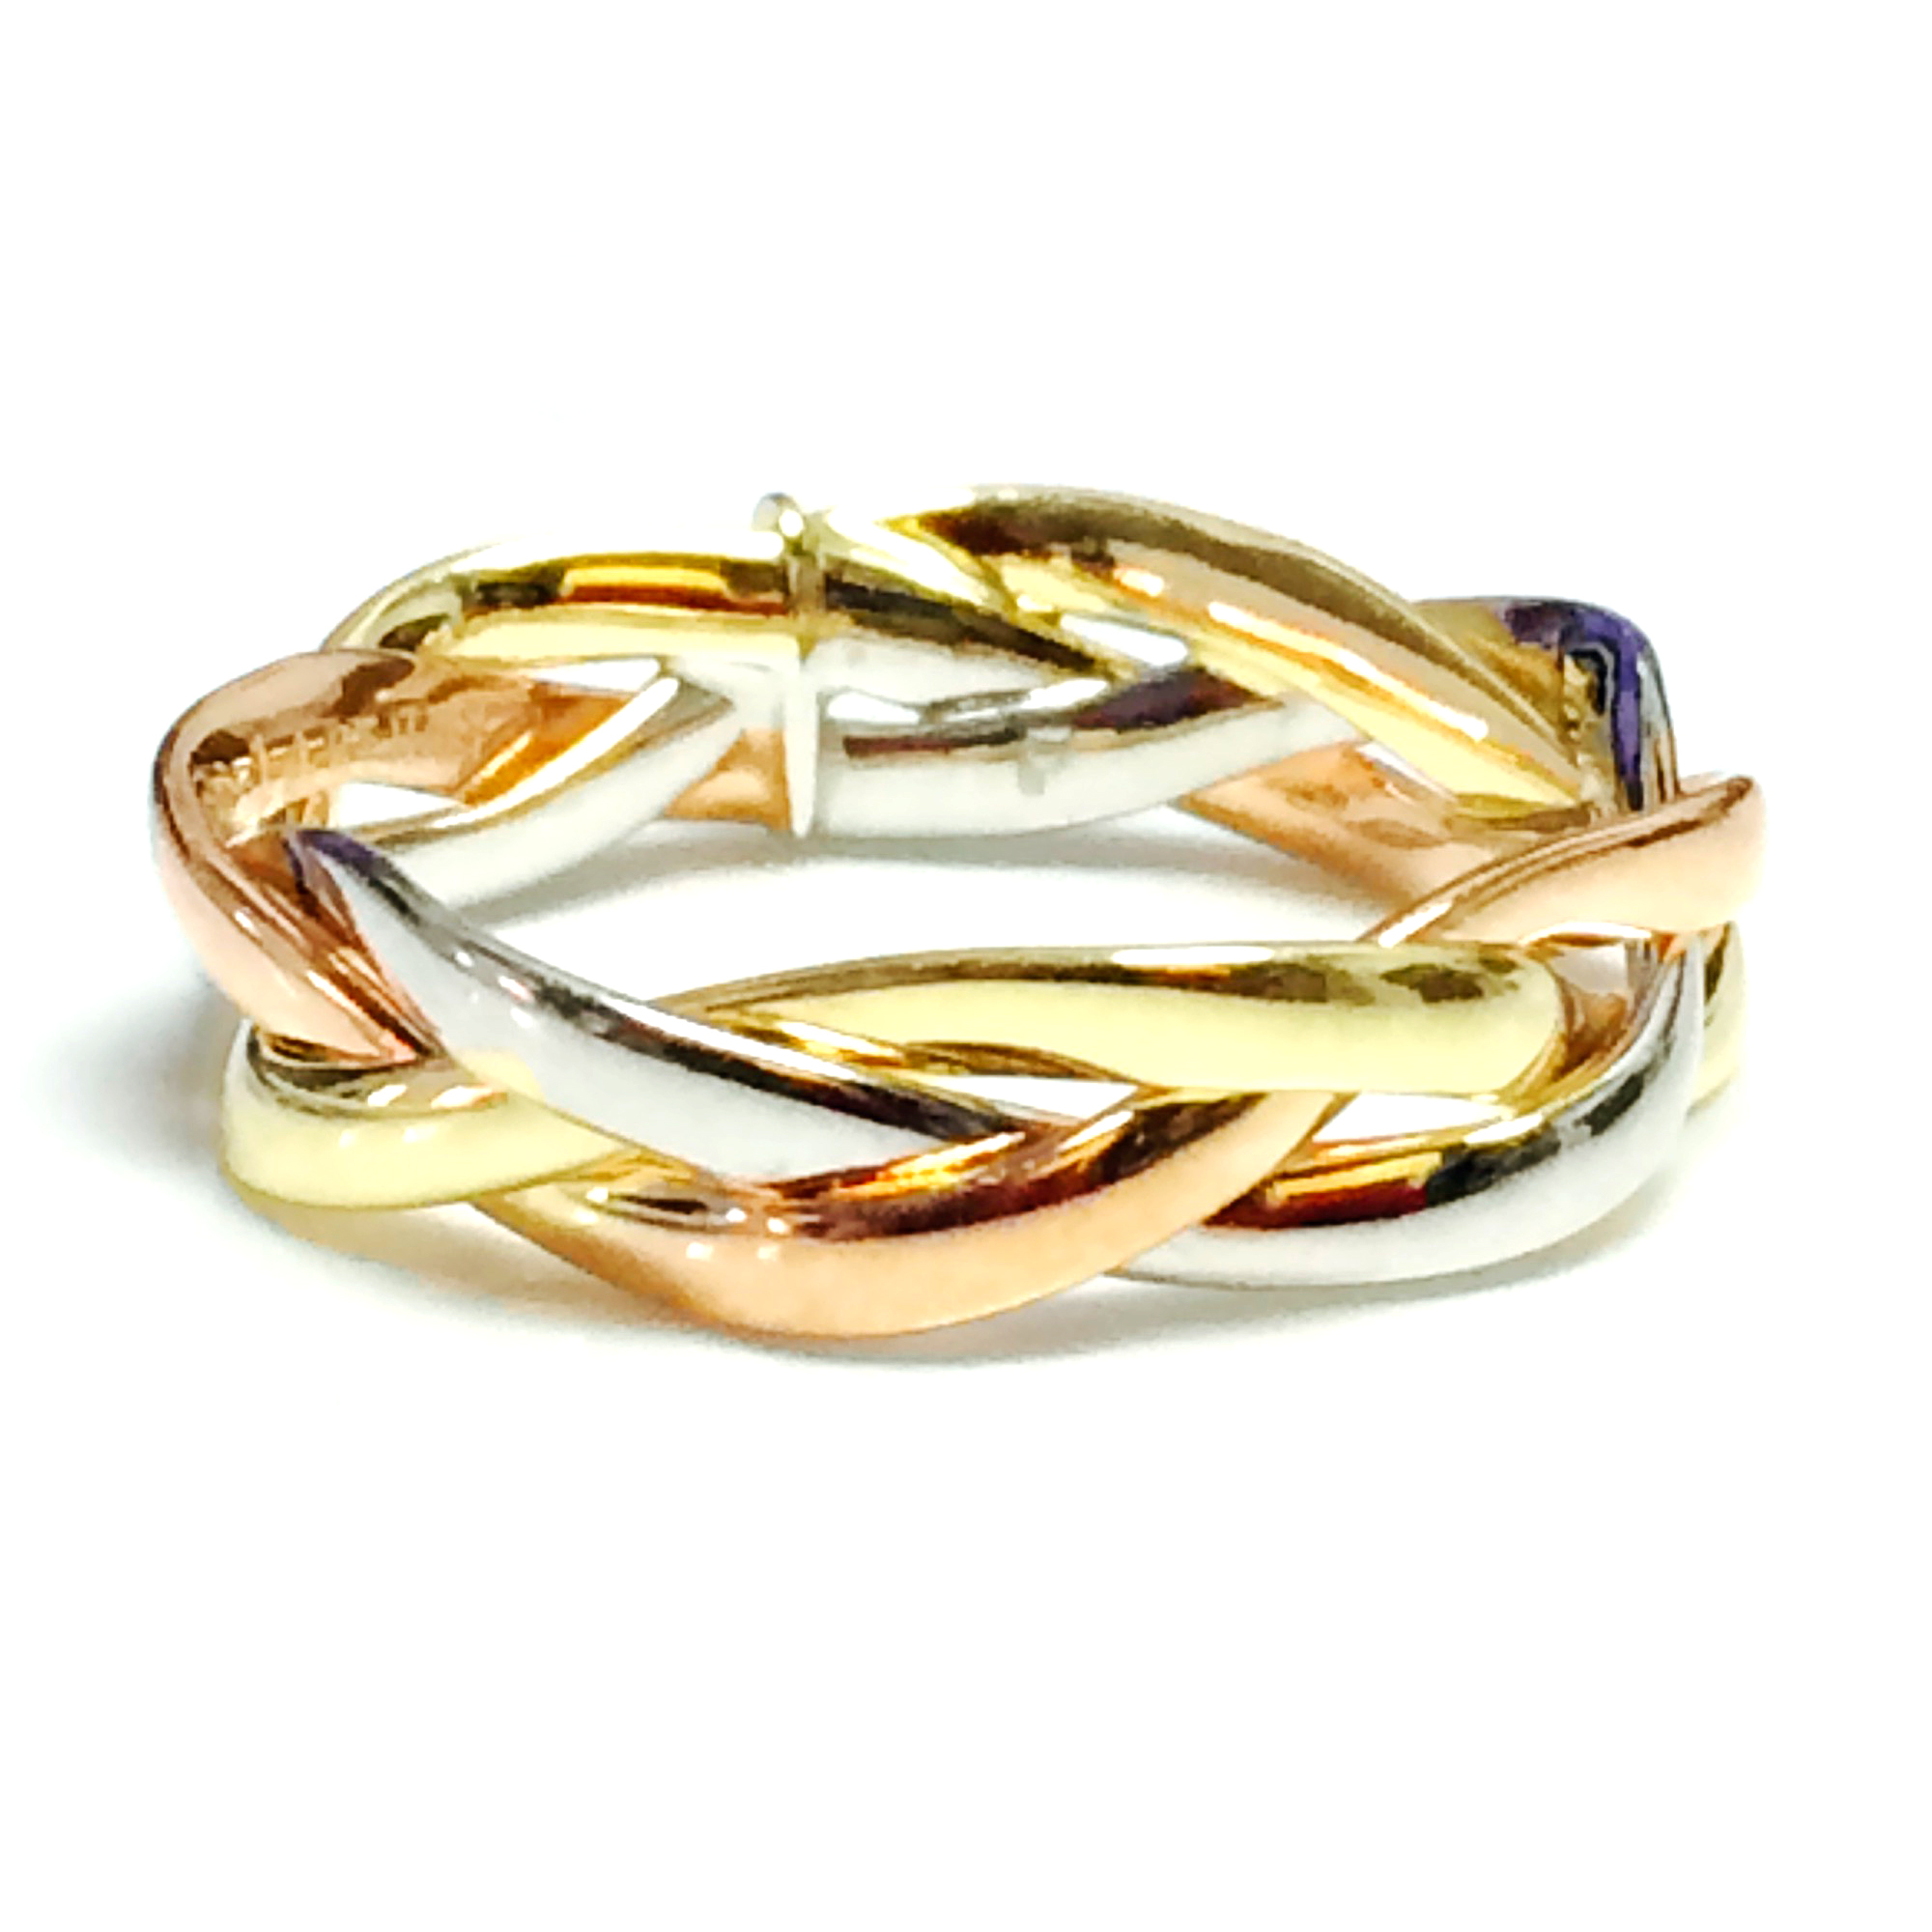 9de0563c4 Details about 14K Tri Color Gold Intertwined Braided Ring